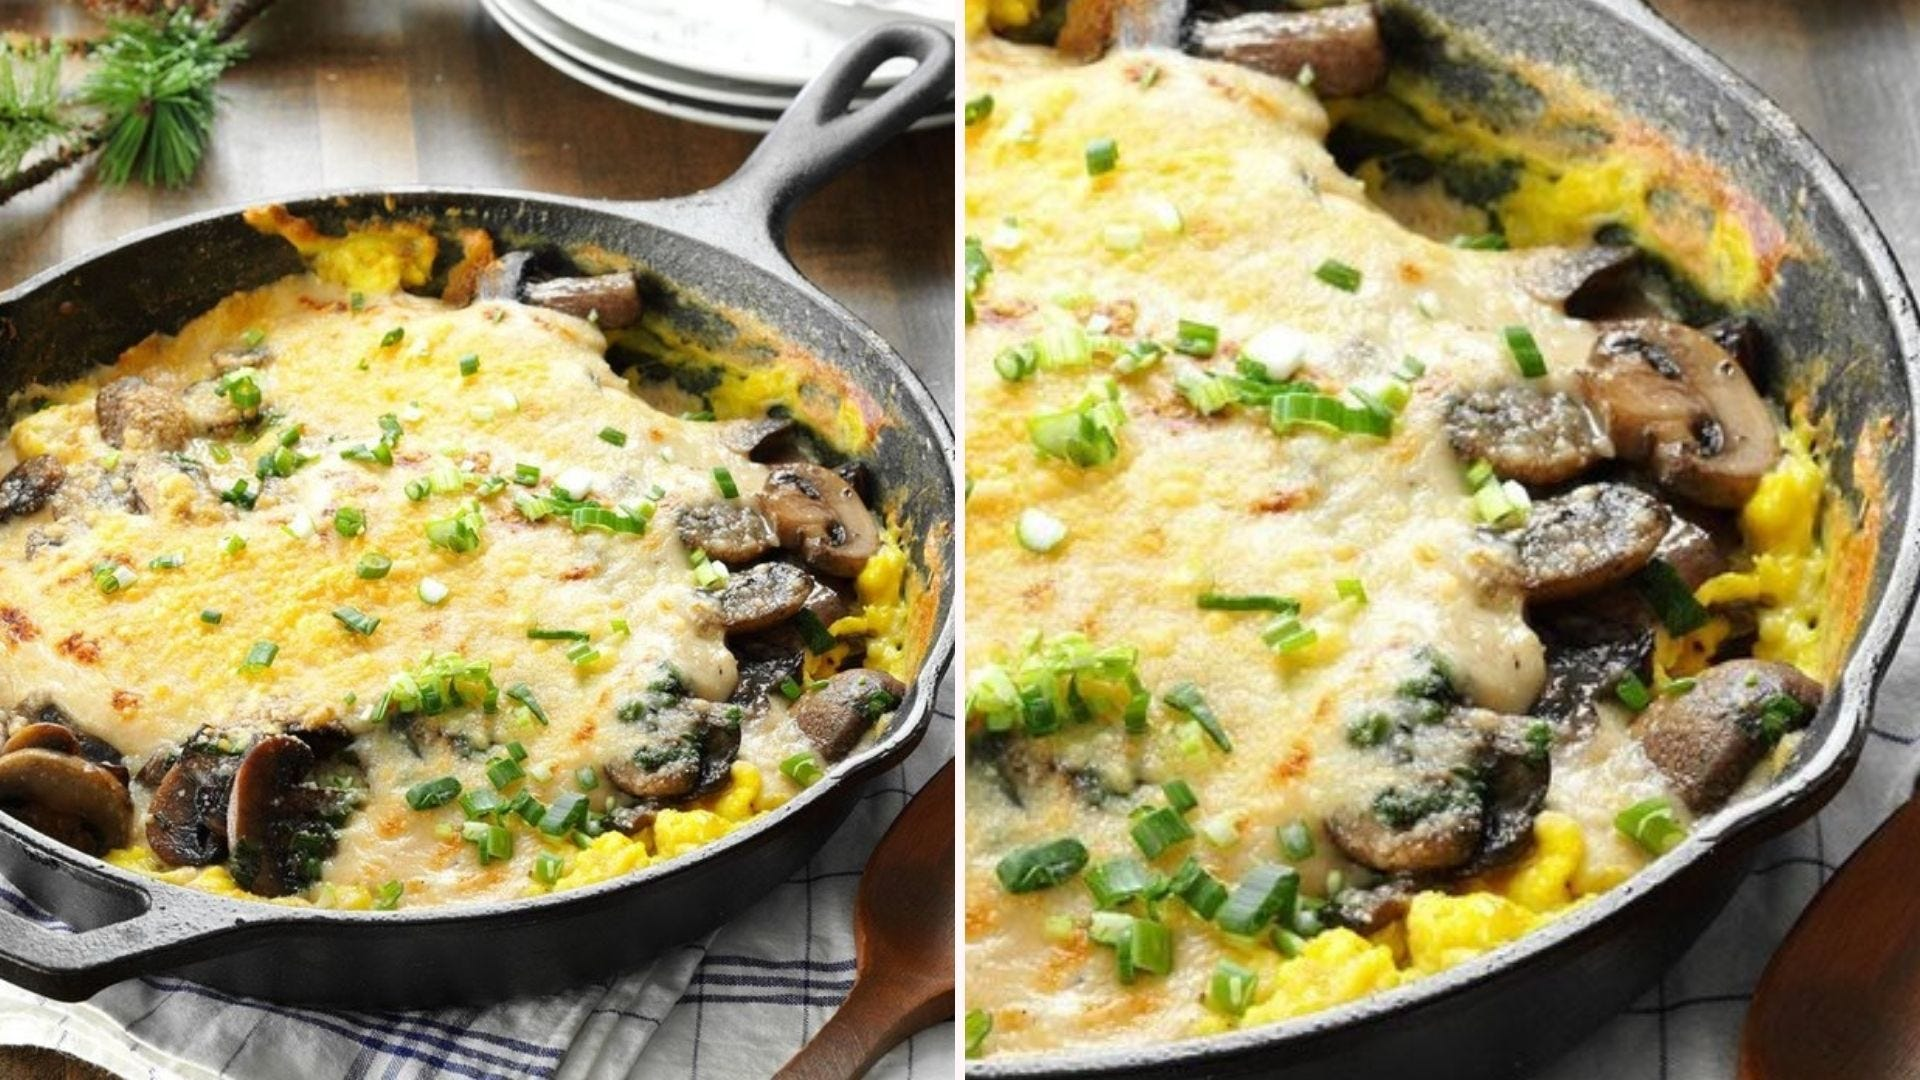 Two images: The left image is of creamy eggs au gratin filled with a parmesan cream sauce and garnished with green onions, and the right image is of a closeup of the same dish.